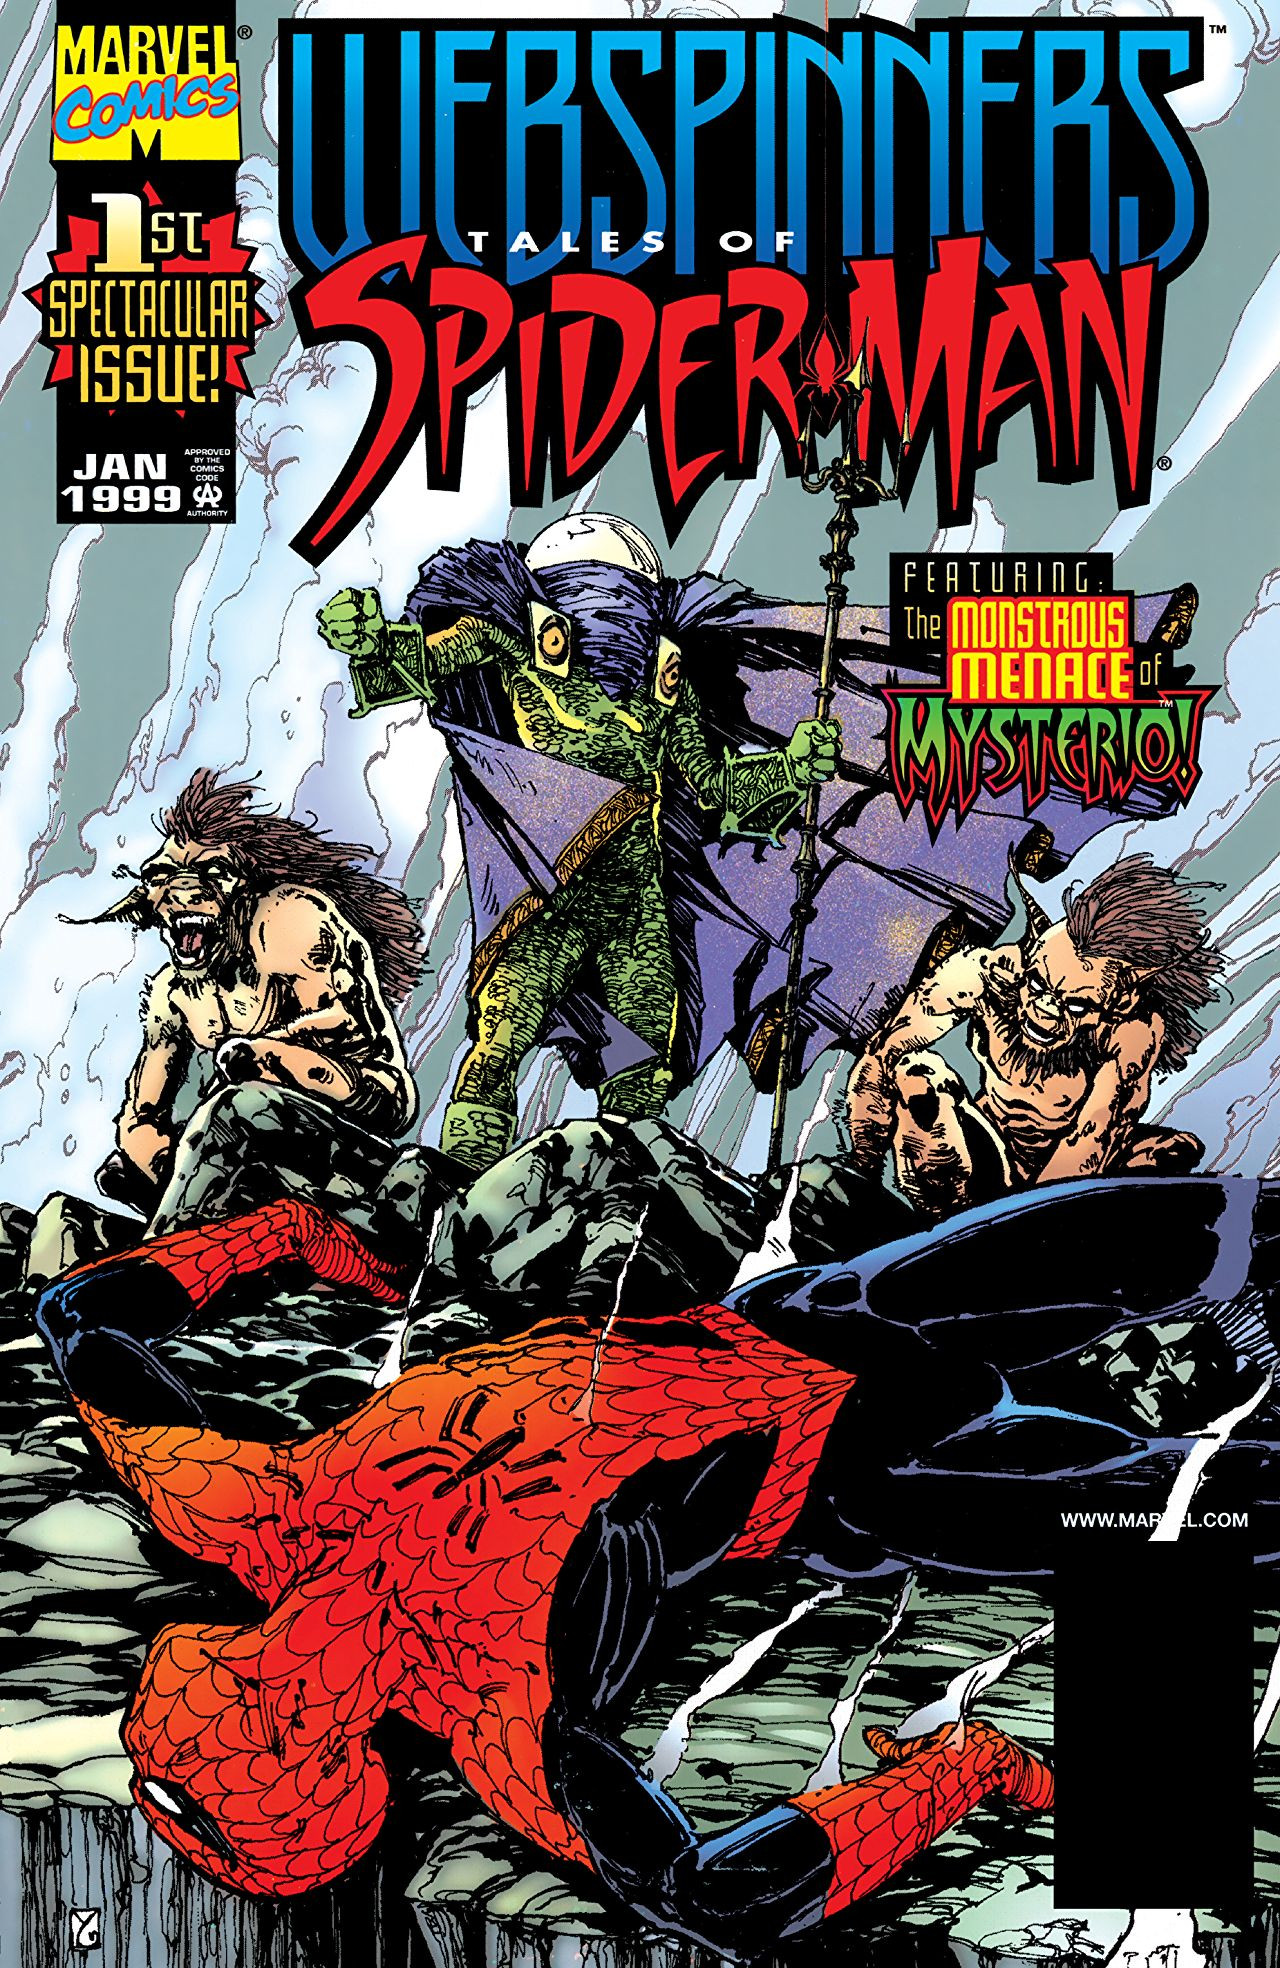 Webspinners: Tales of Spider-Man Vol 1